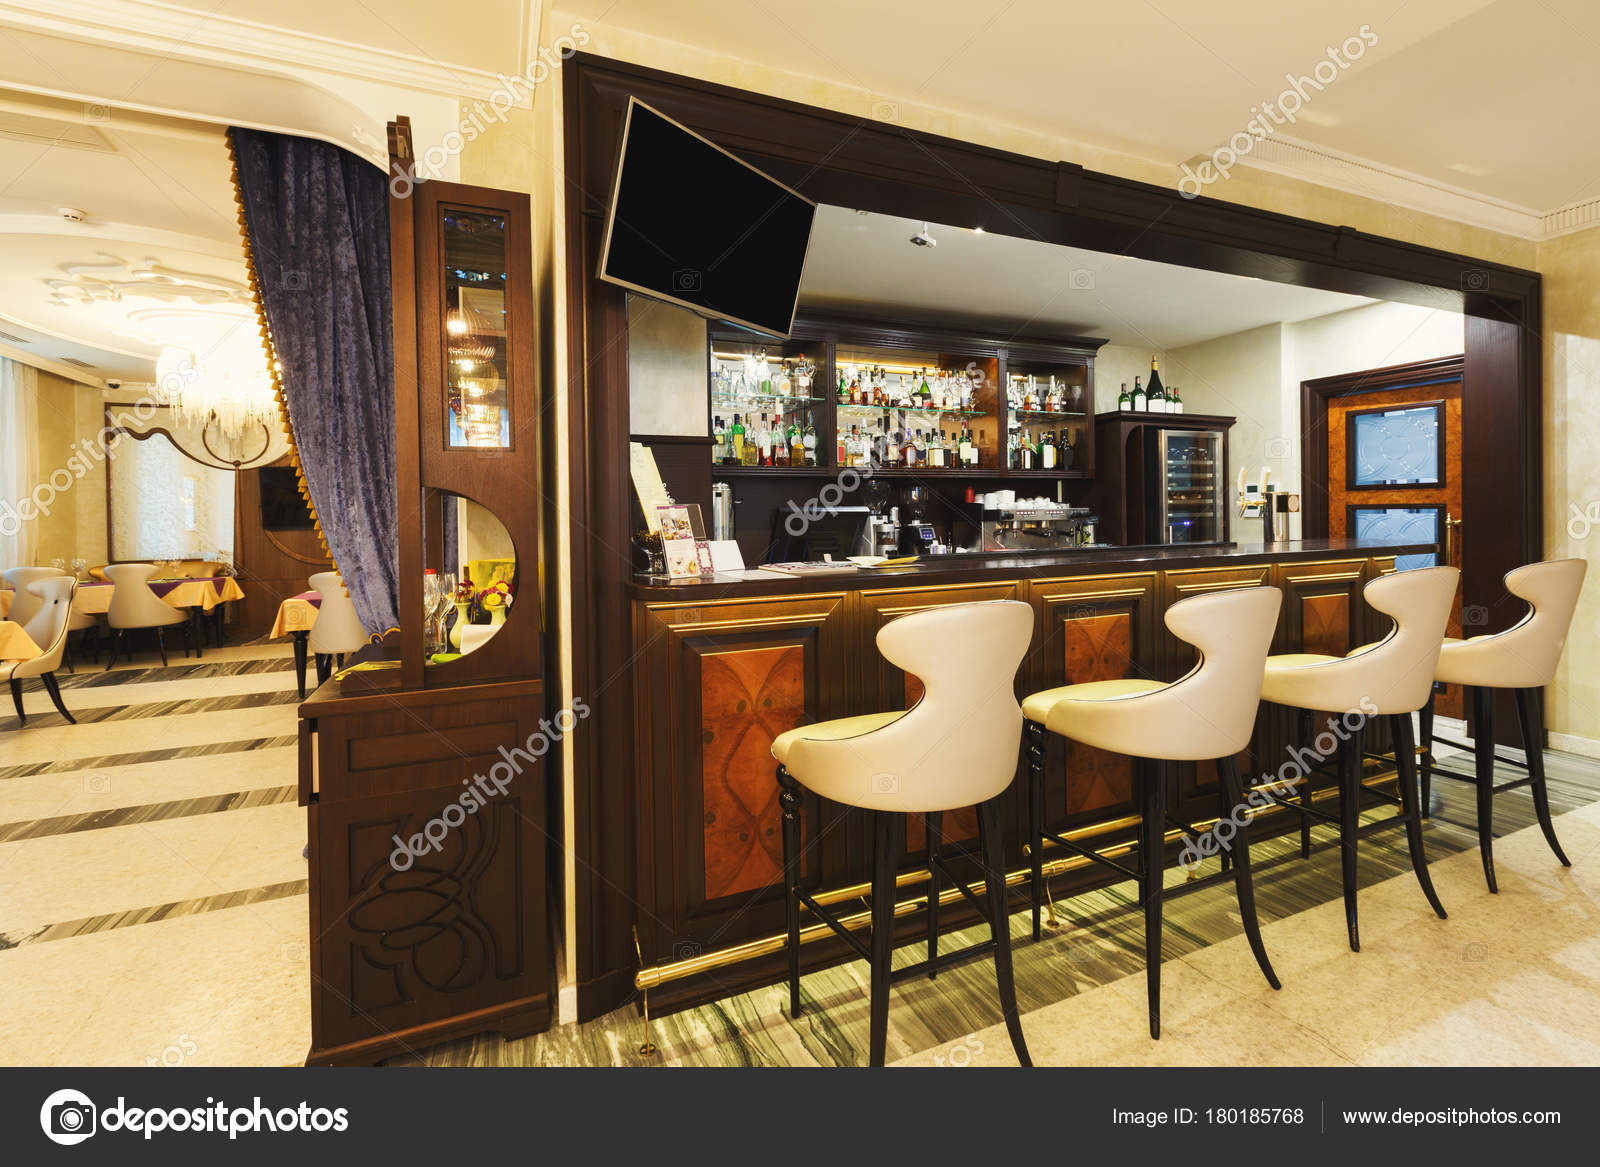 Hotel Lounge Bar With Bottle Shelfs And Seats Stock Photo